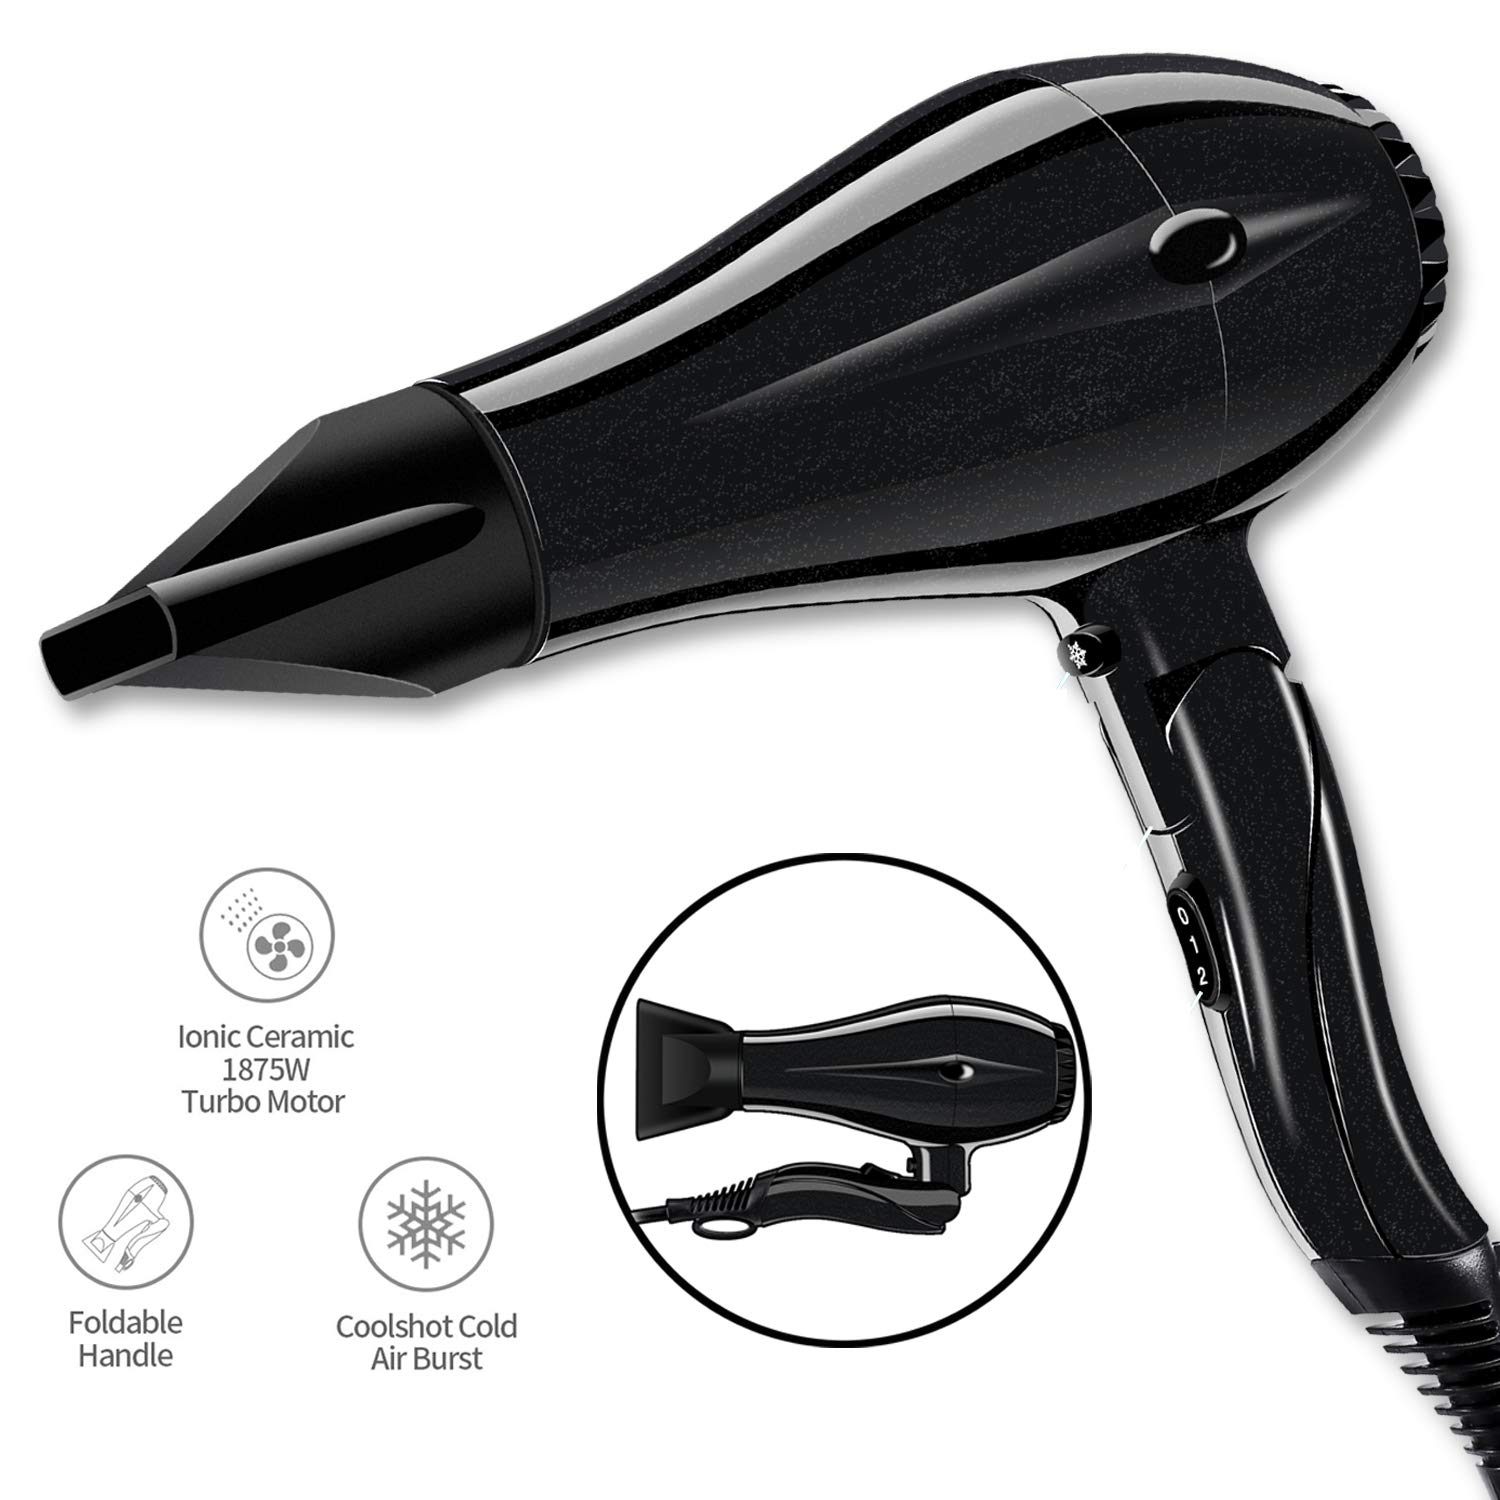 Professional Salon Hair Dryer 1875 Watt Tourmaline Ionic Blow Dryer with 2 Concentrator Nozzles Attachments DC Motor Light Weight Low Noise Black